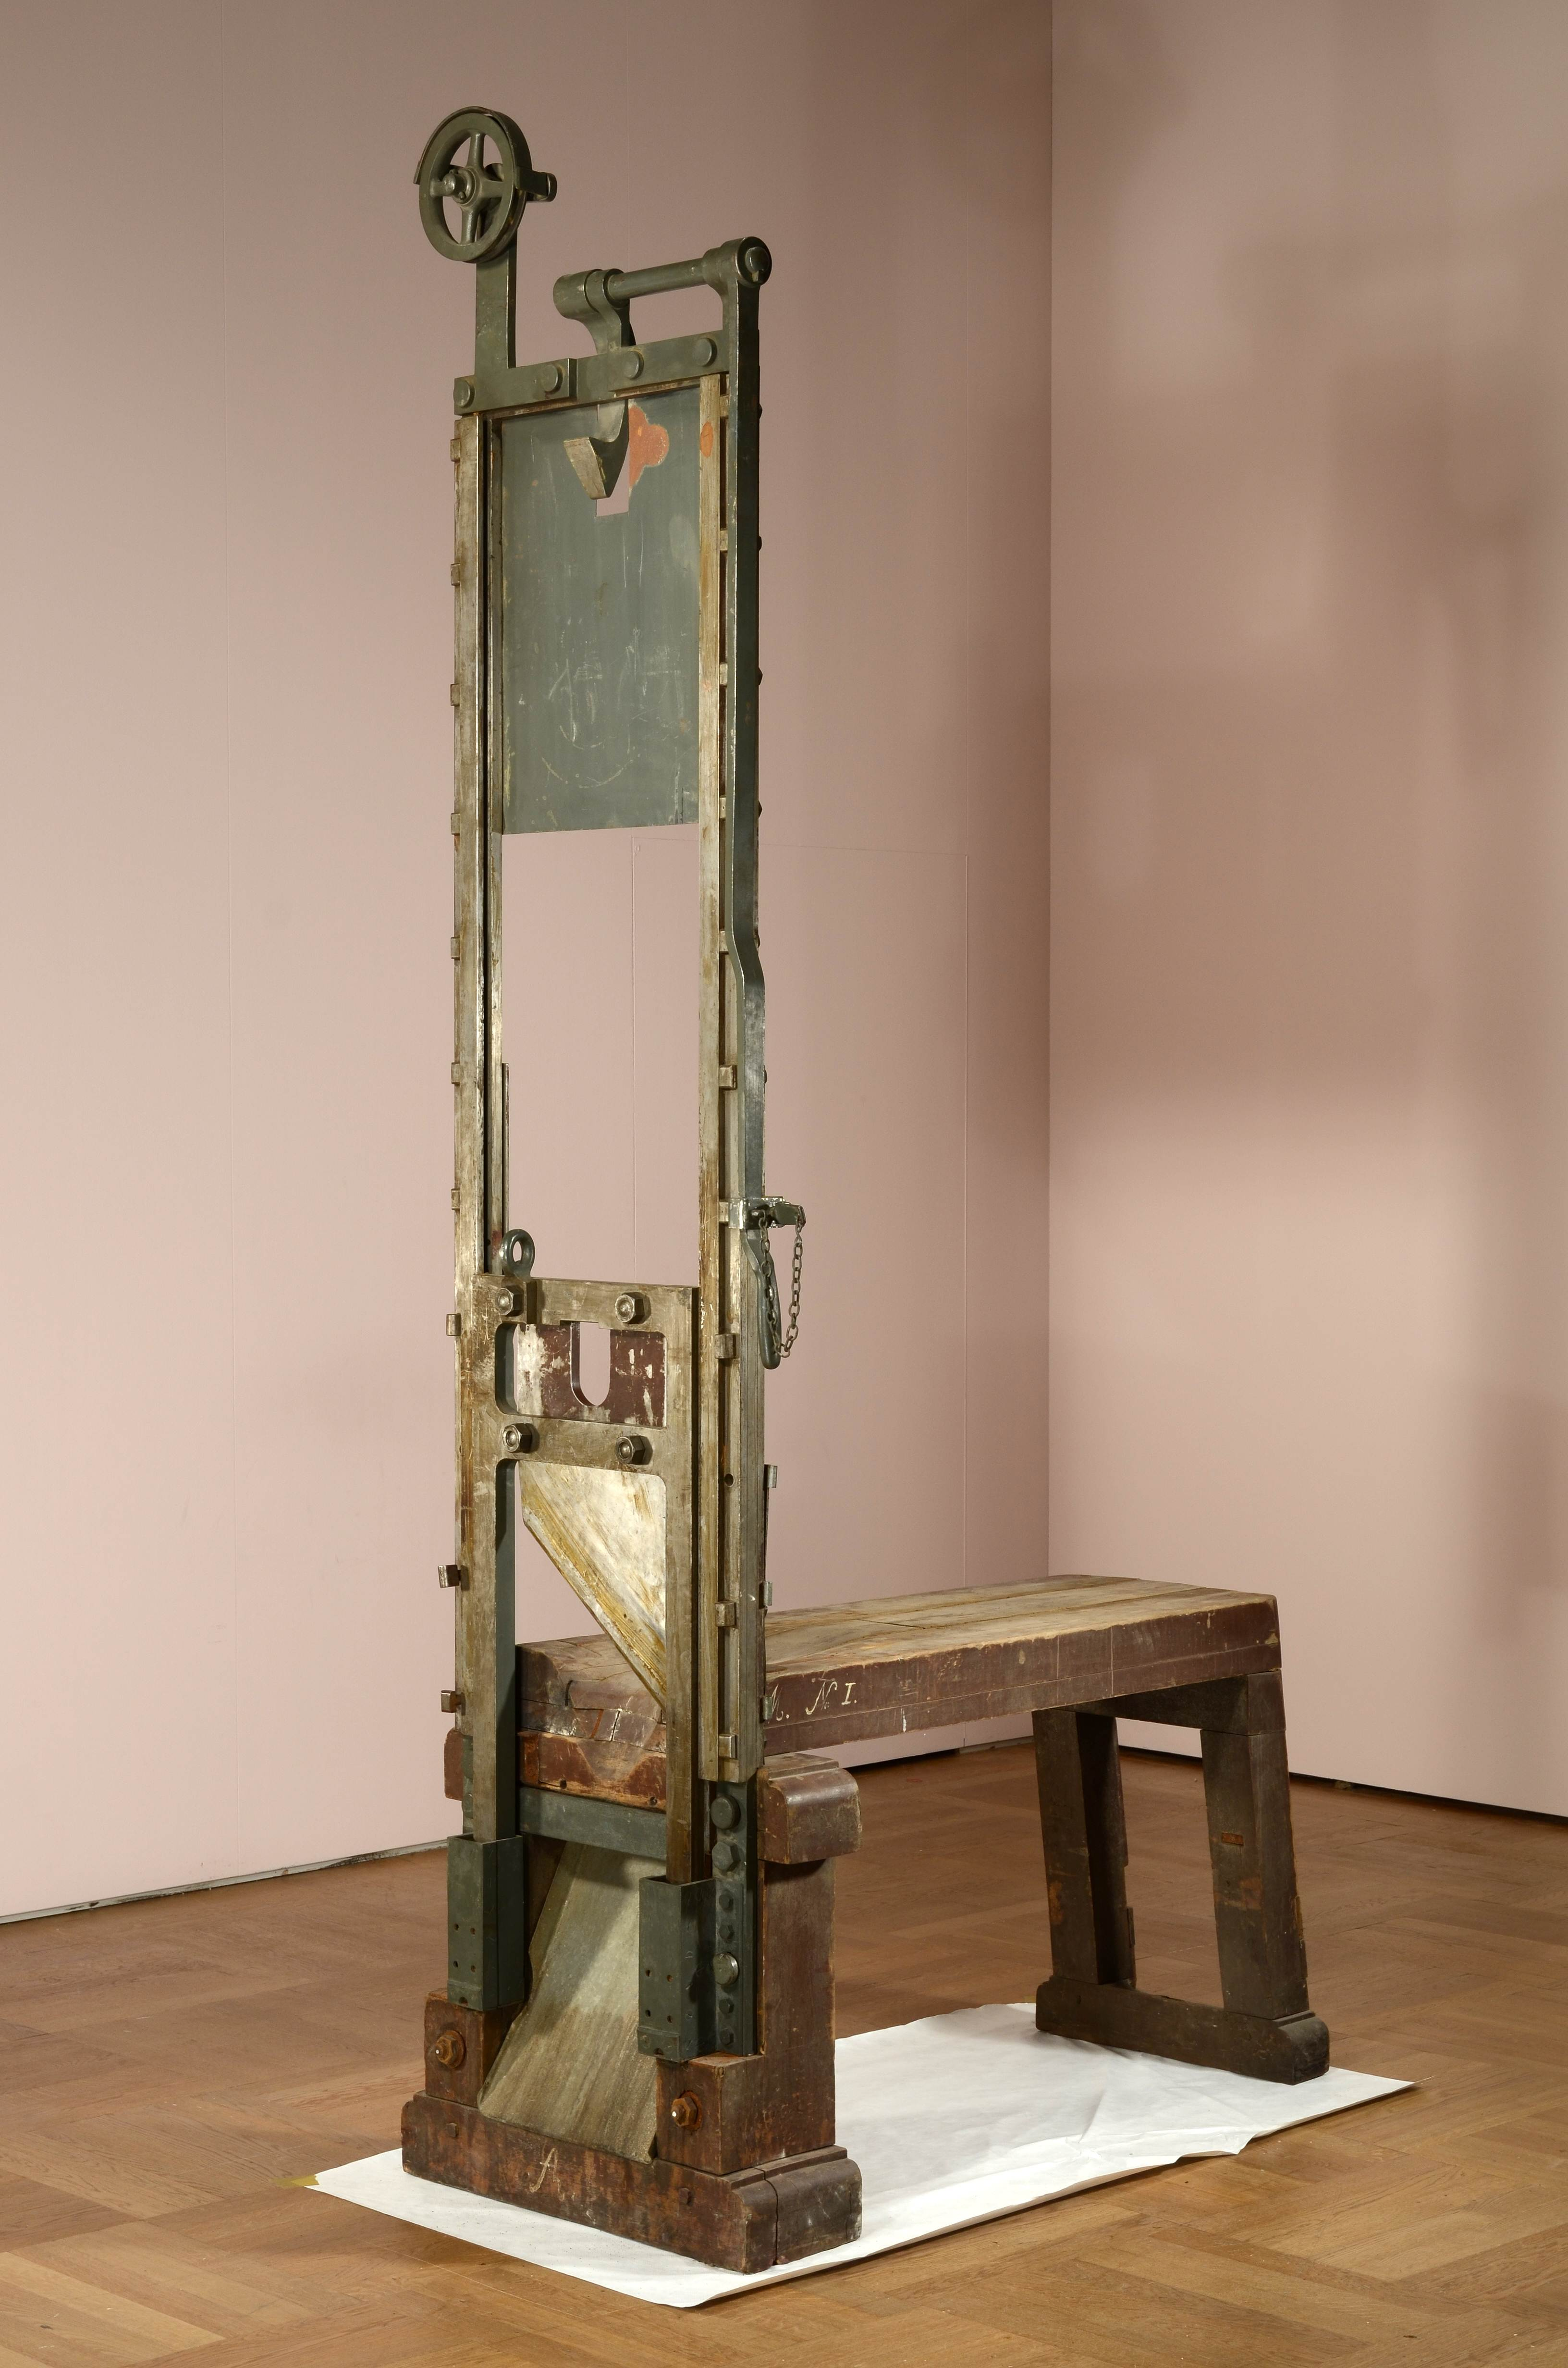 Electric chair aftermath - Real Guillotine Execution Viewing Gallery